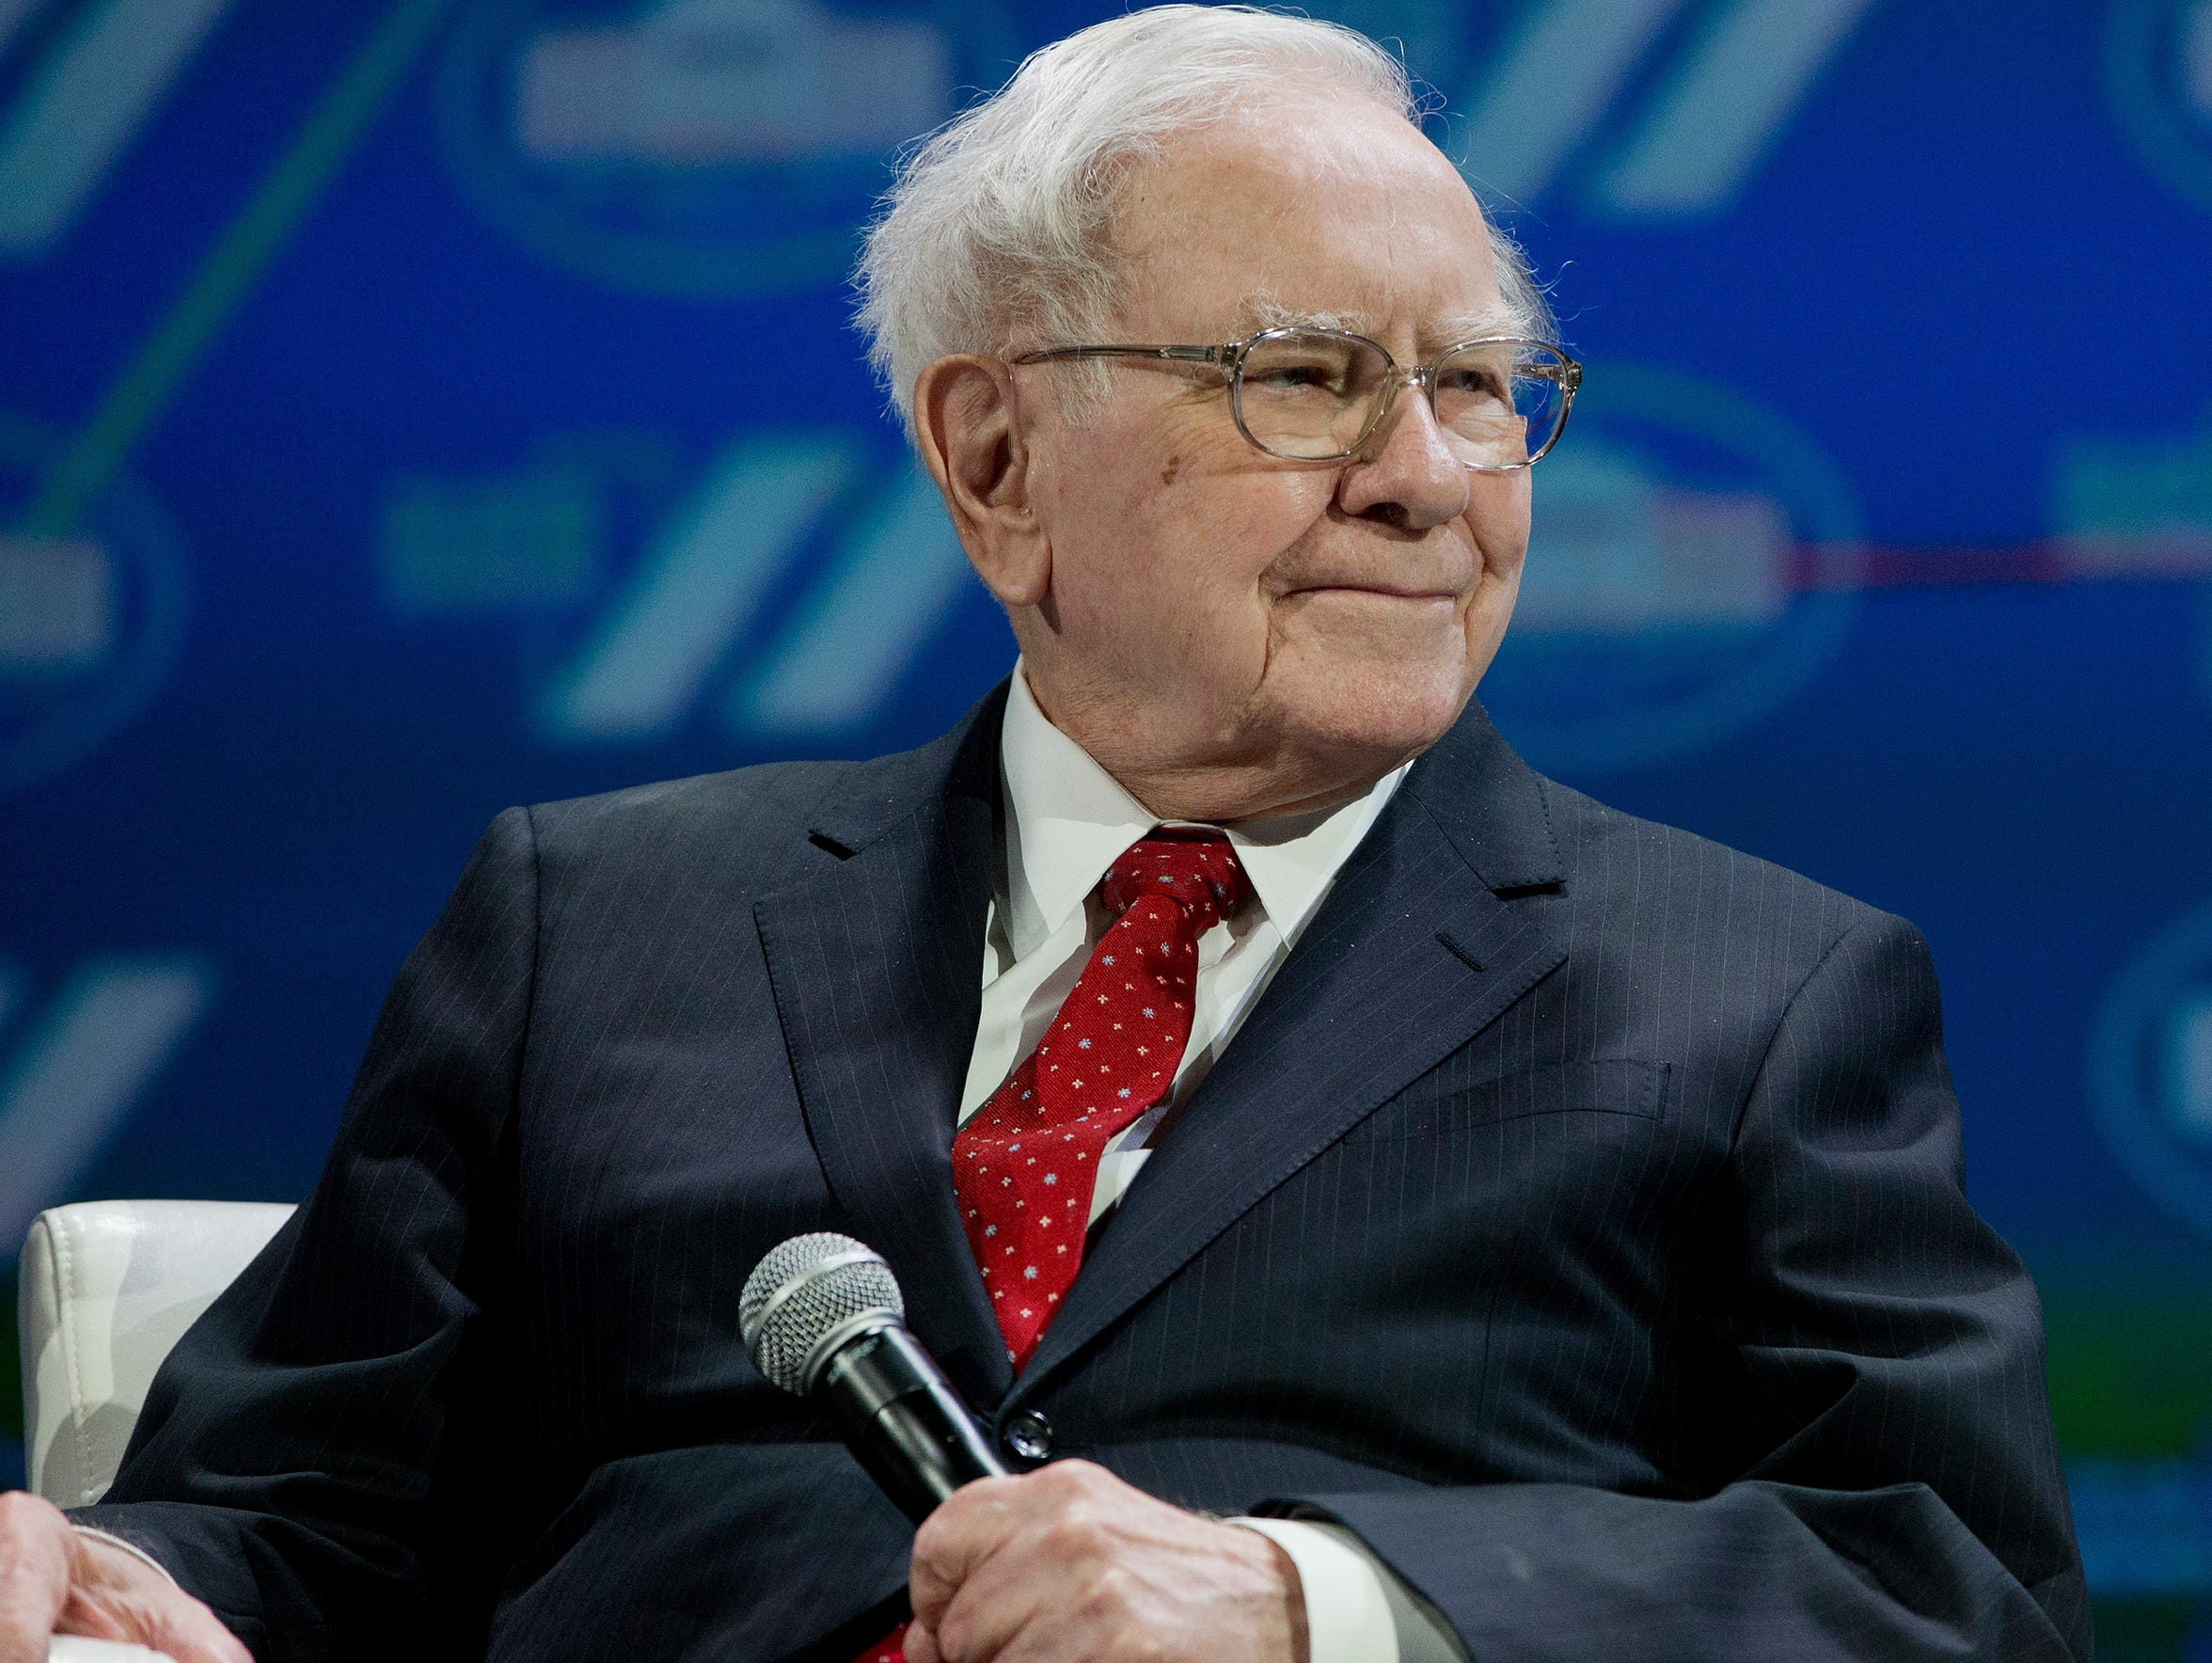 Berkshire Hathaway CEO Warren Buffett attends the White